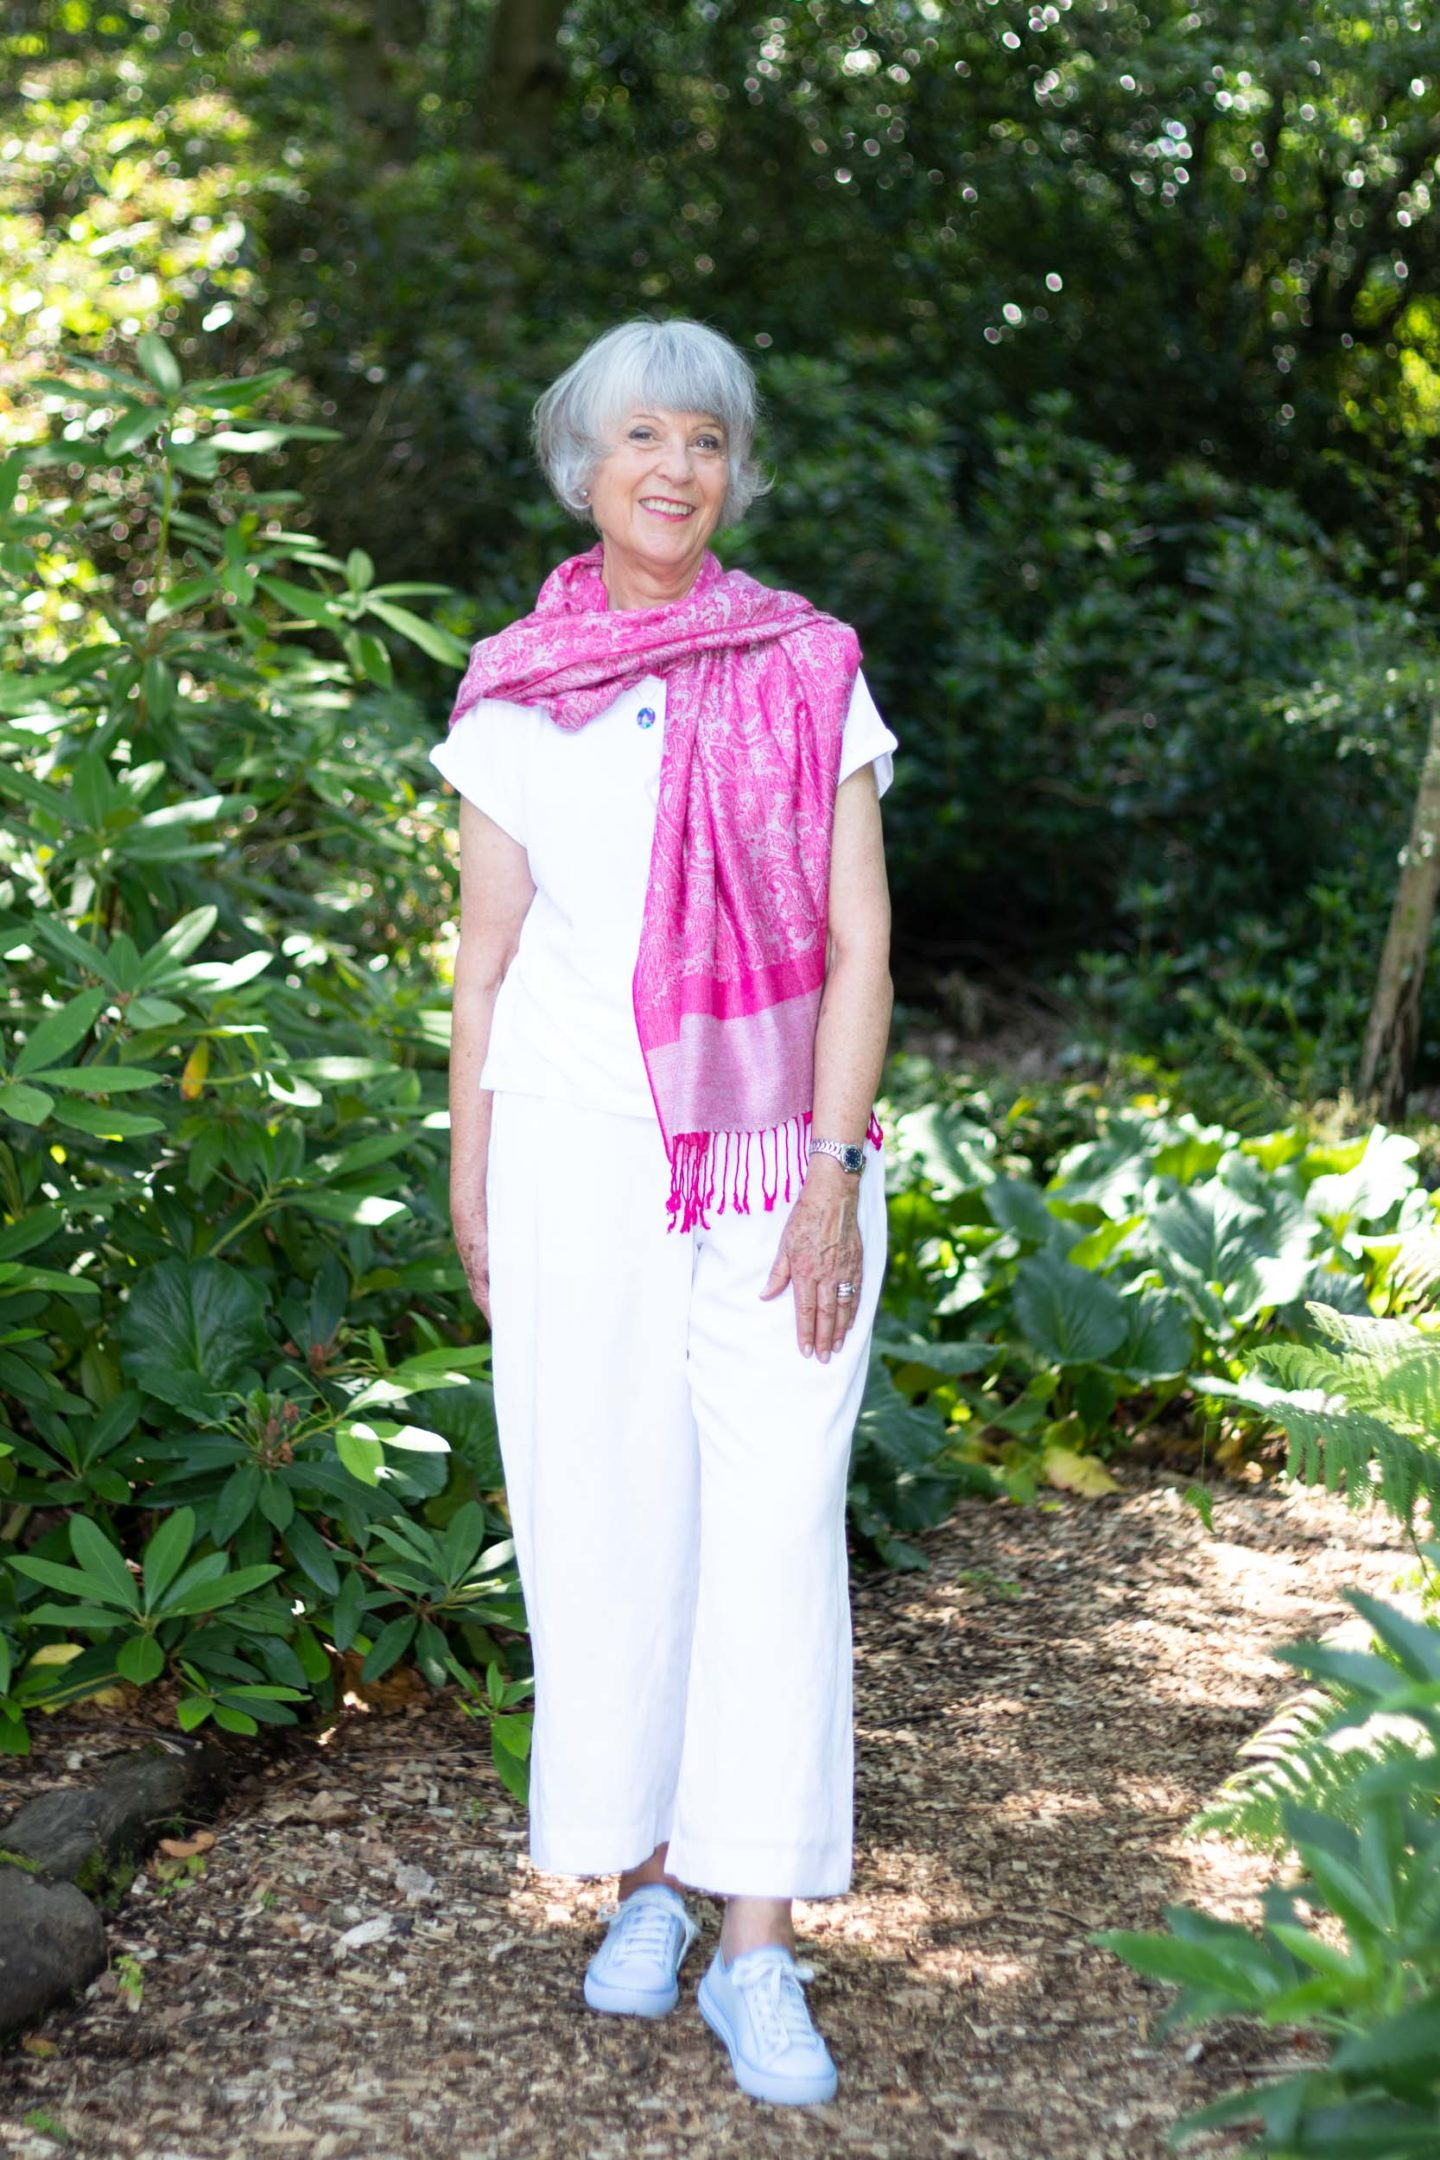 White tee shirt with trousers and bright pink scarf.